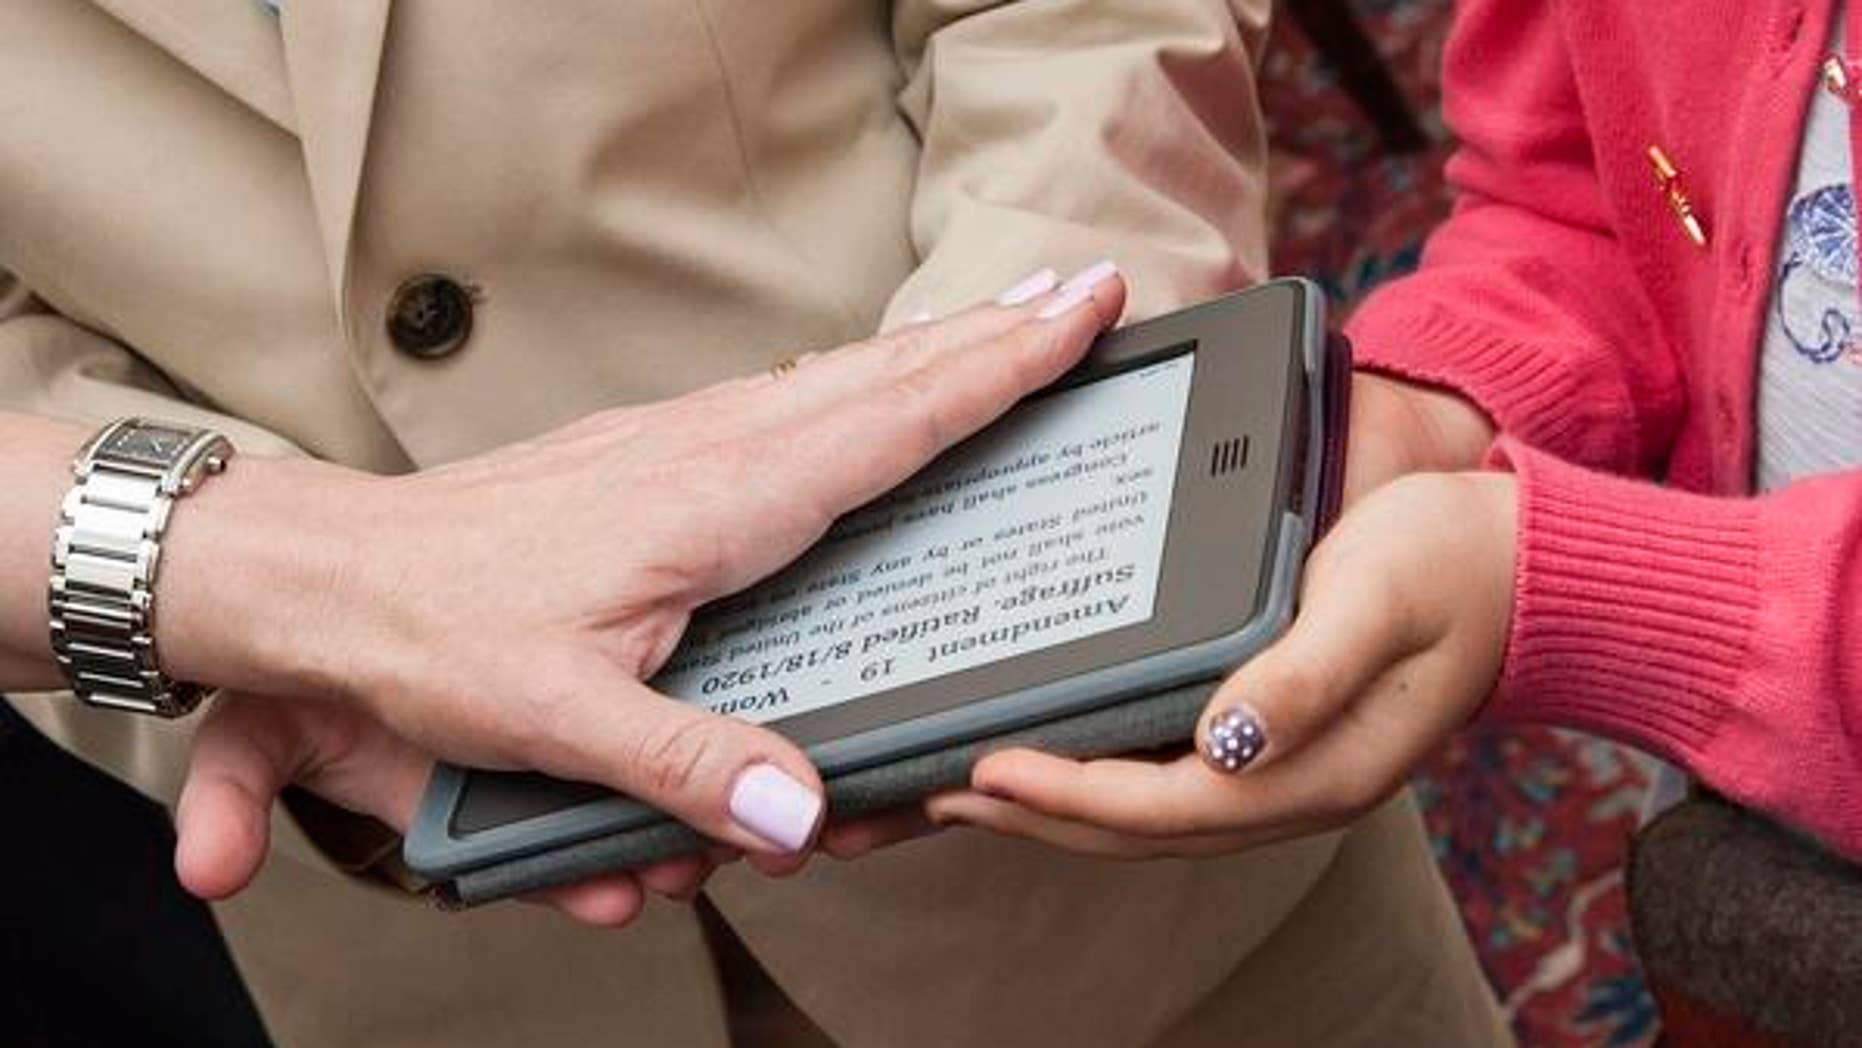 Suzi LeVine became the first U.S. ambassador to take an oath on an e-reader.